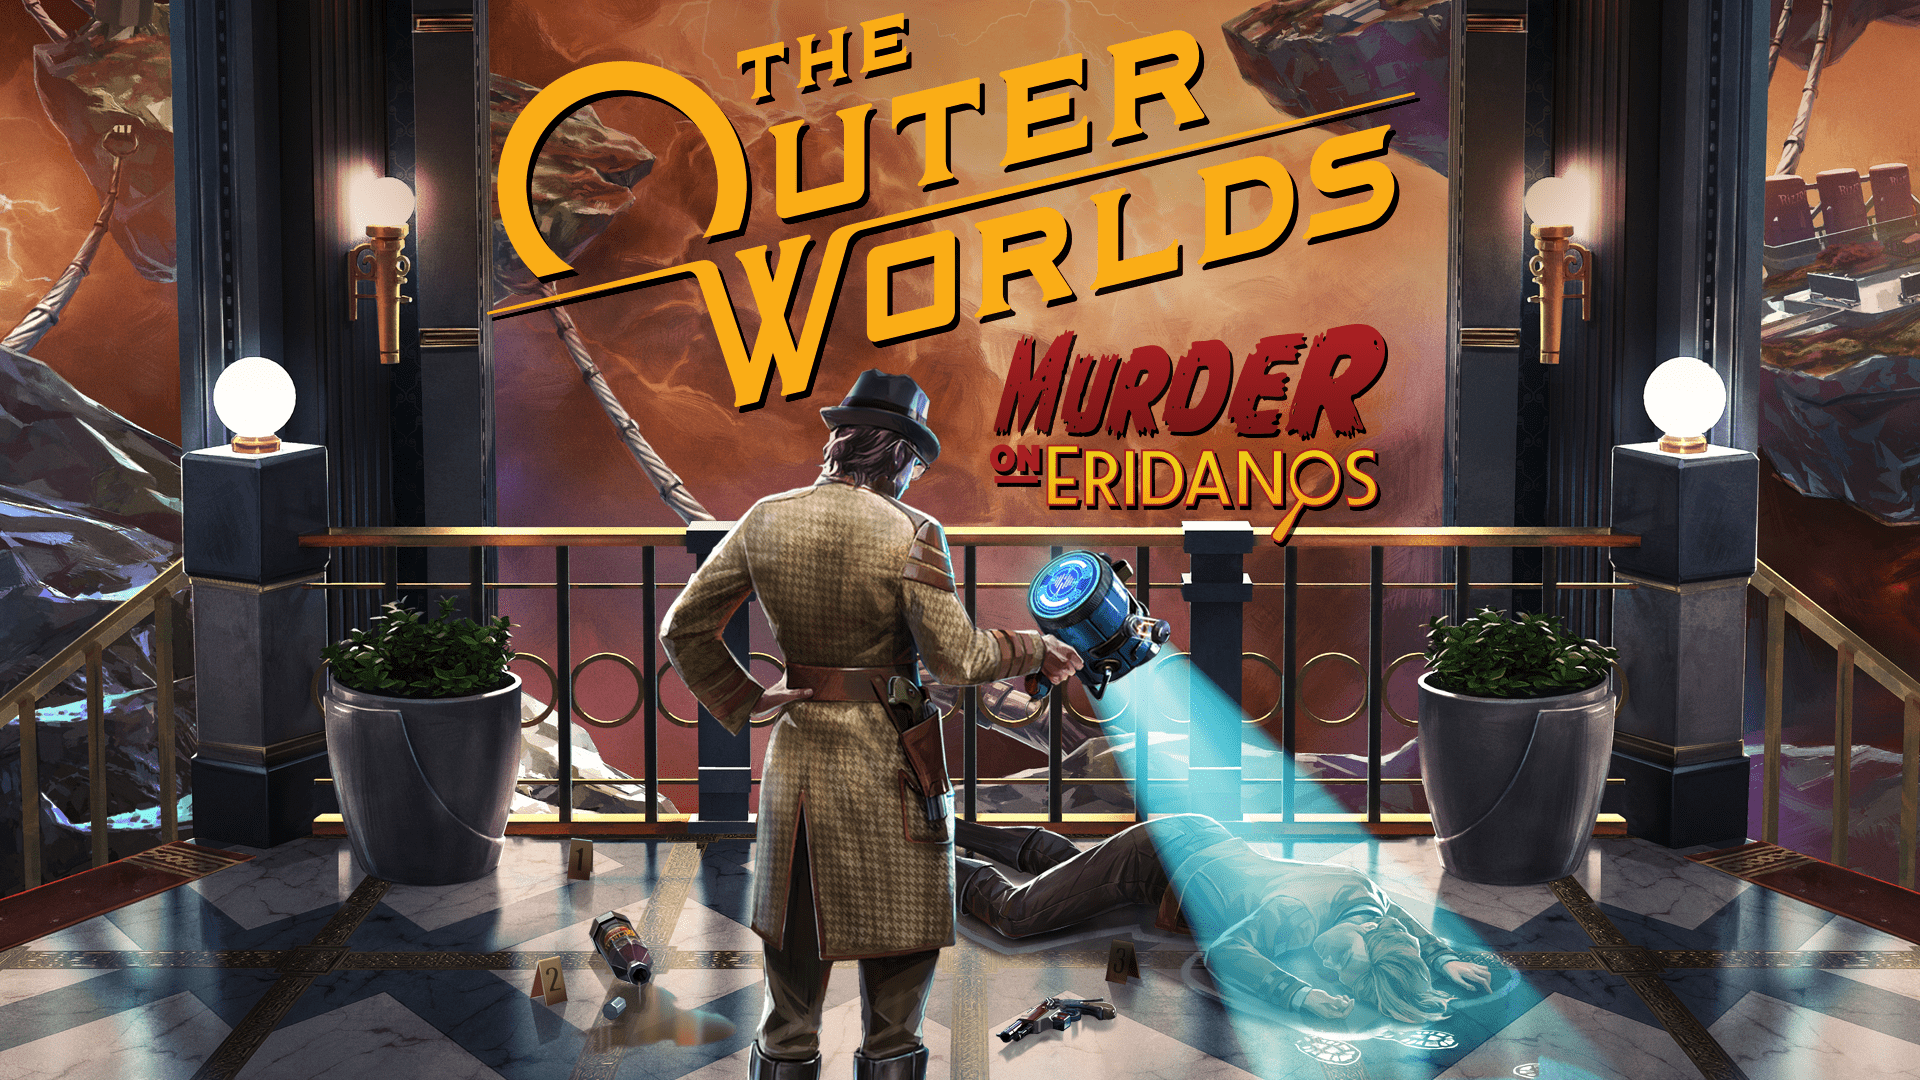 The Outer Worlds: Murder on Eridanos (Steam) | ROW (bf00ba61-6195-4510-9e4e-32c98f497aaa)